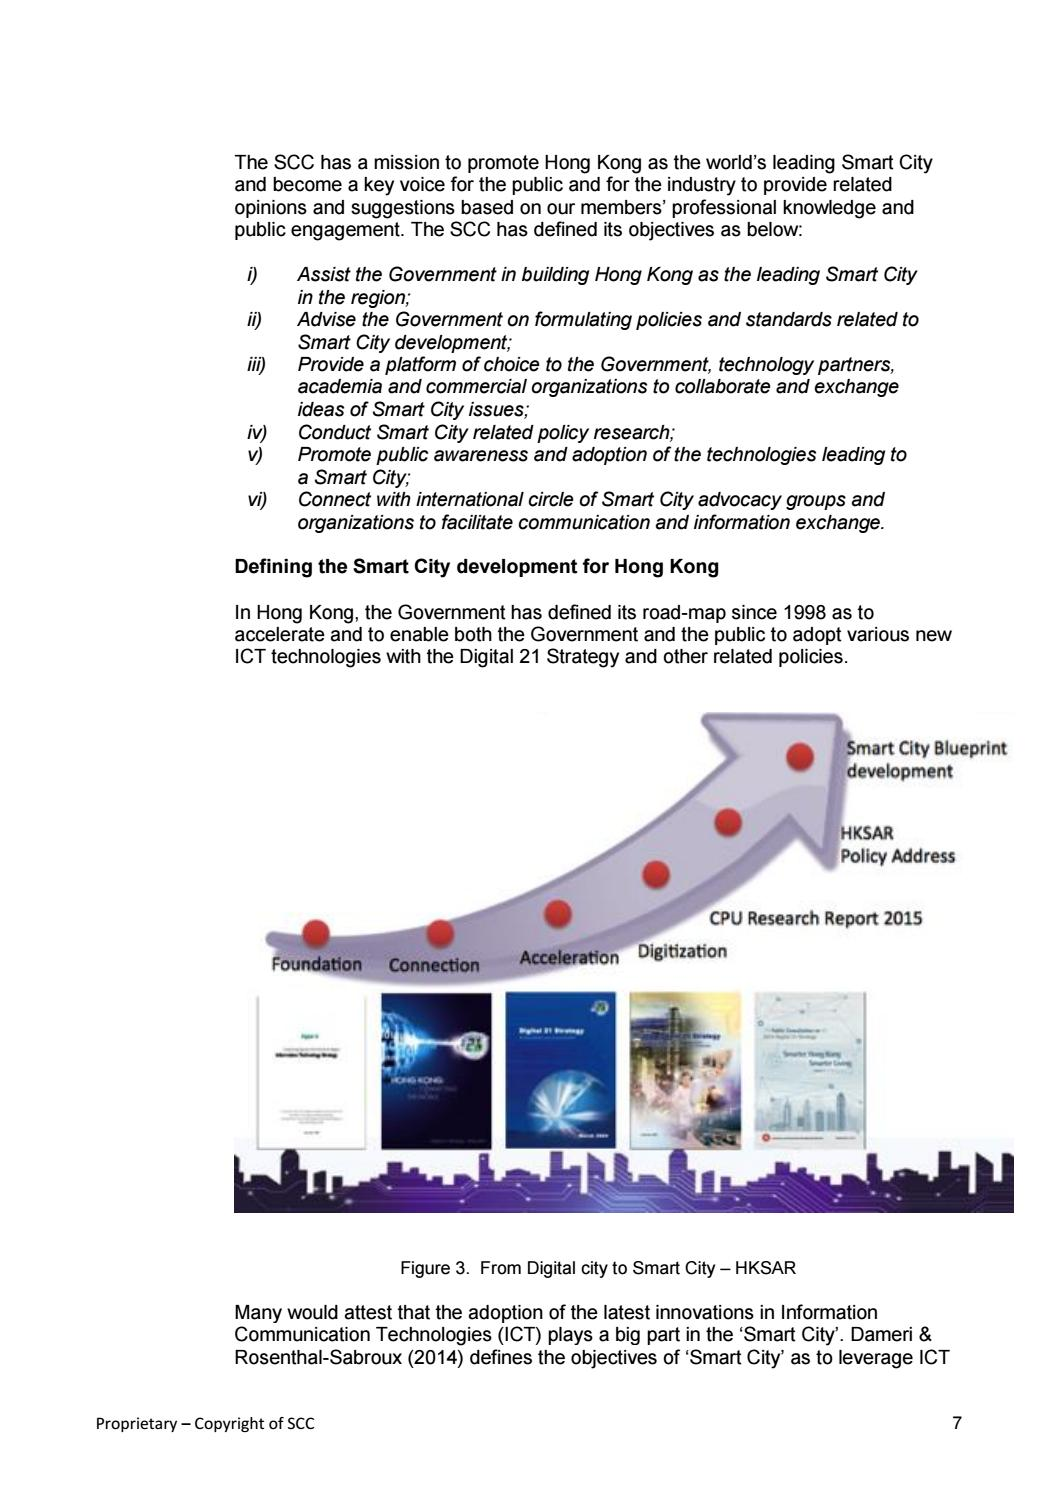 Smart city blueprint advisory paper interim report 2016 by smart smart city blueprint advisory paper interim report 2016 by smart city consortium research blueprint committee issuu malvernweather Gallery